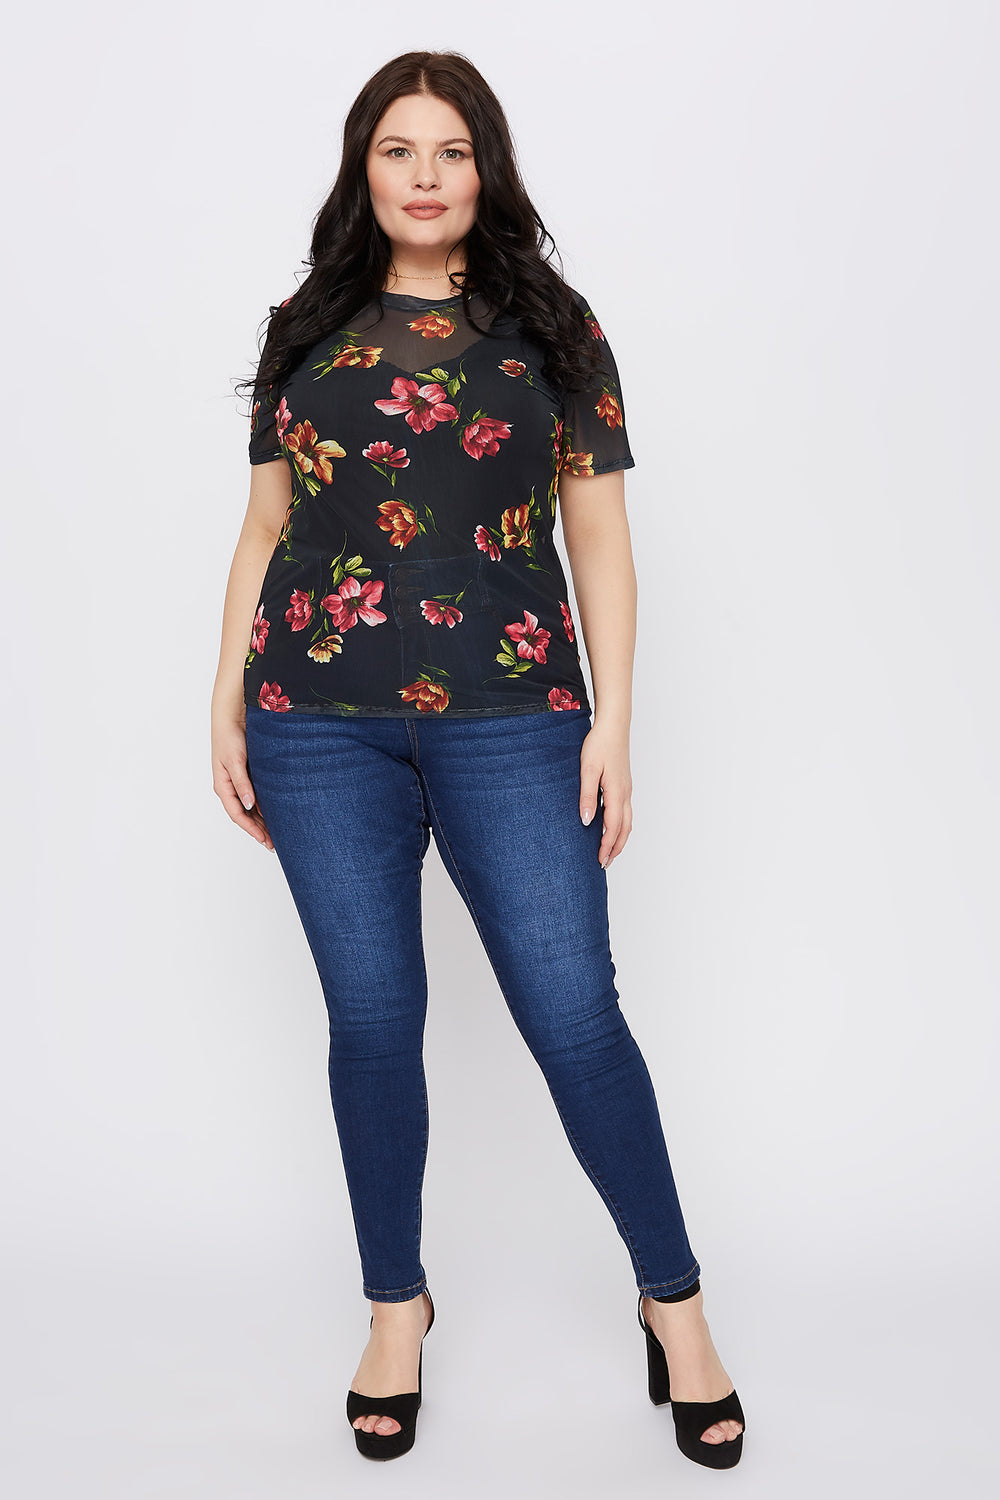 Plus Size Floral Mesh Short Sleeve Top Black